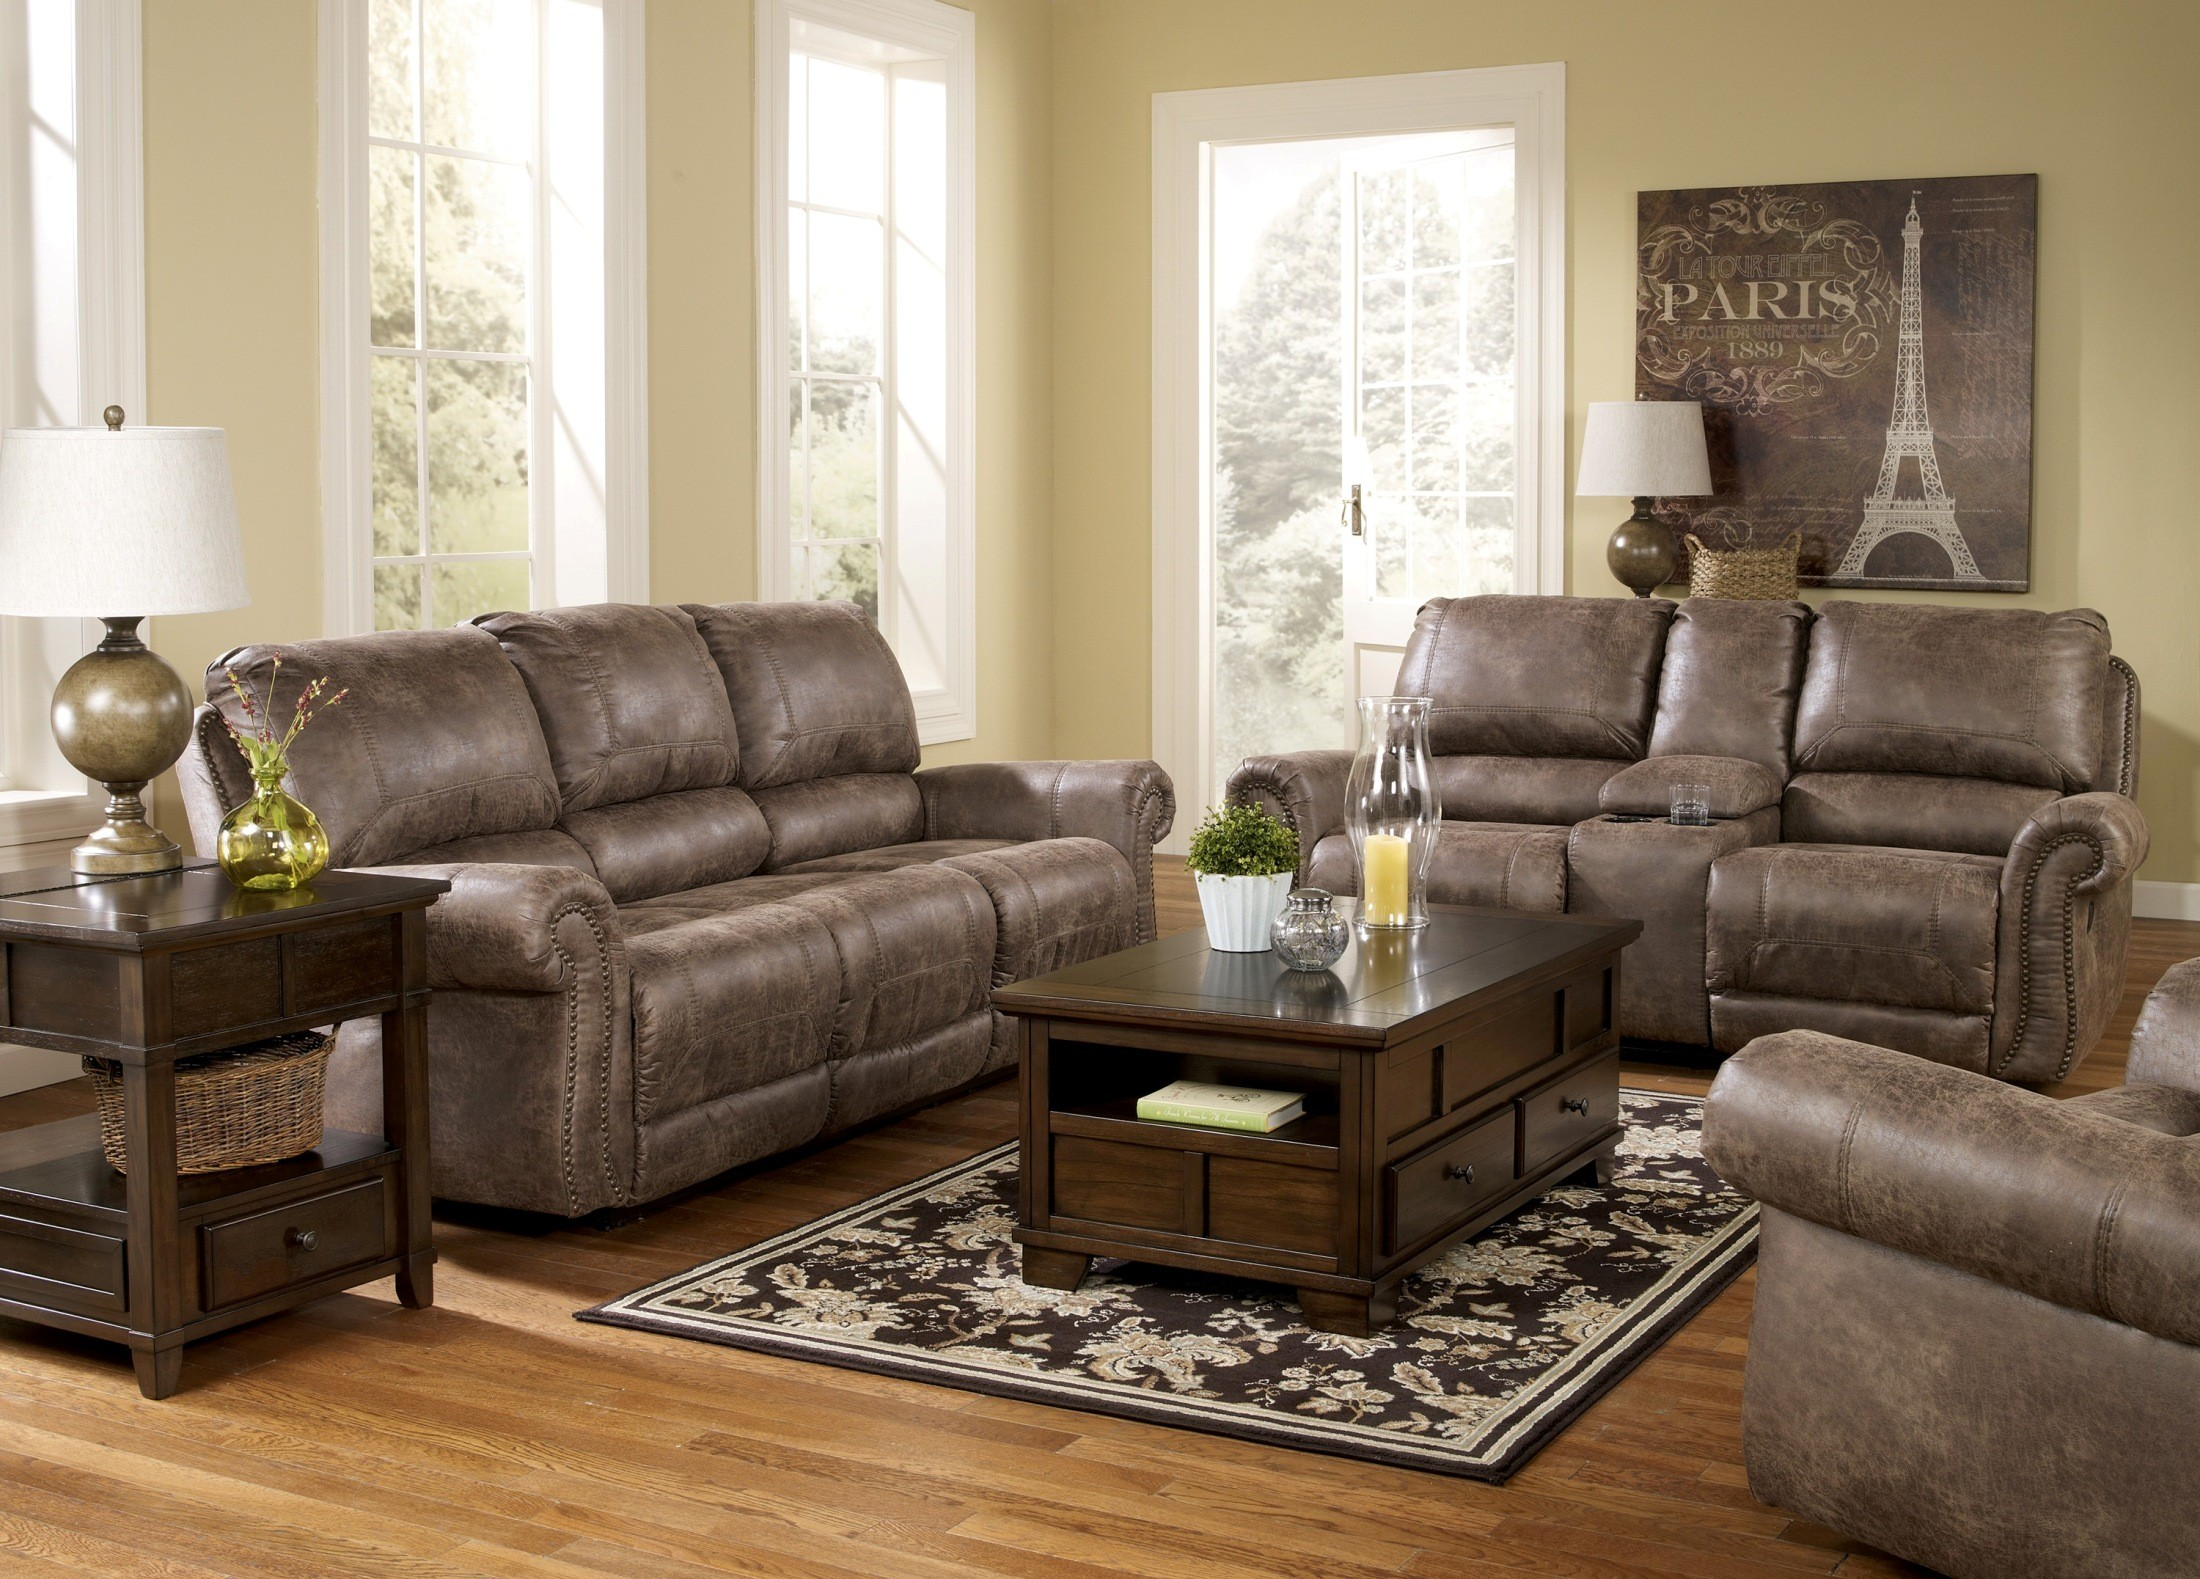 reclining living room furniture sets. Oberson Gunsmoke Reclining Living Room Set · Old Vs New - Buying Furniture Online 336136 Sets G